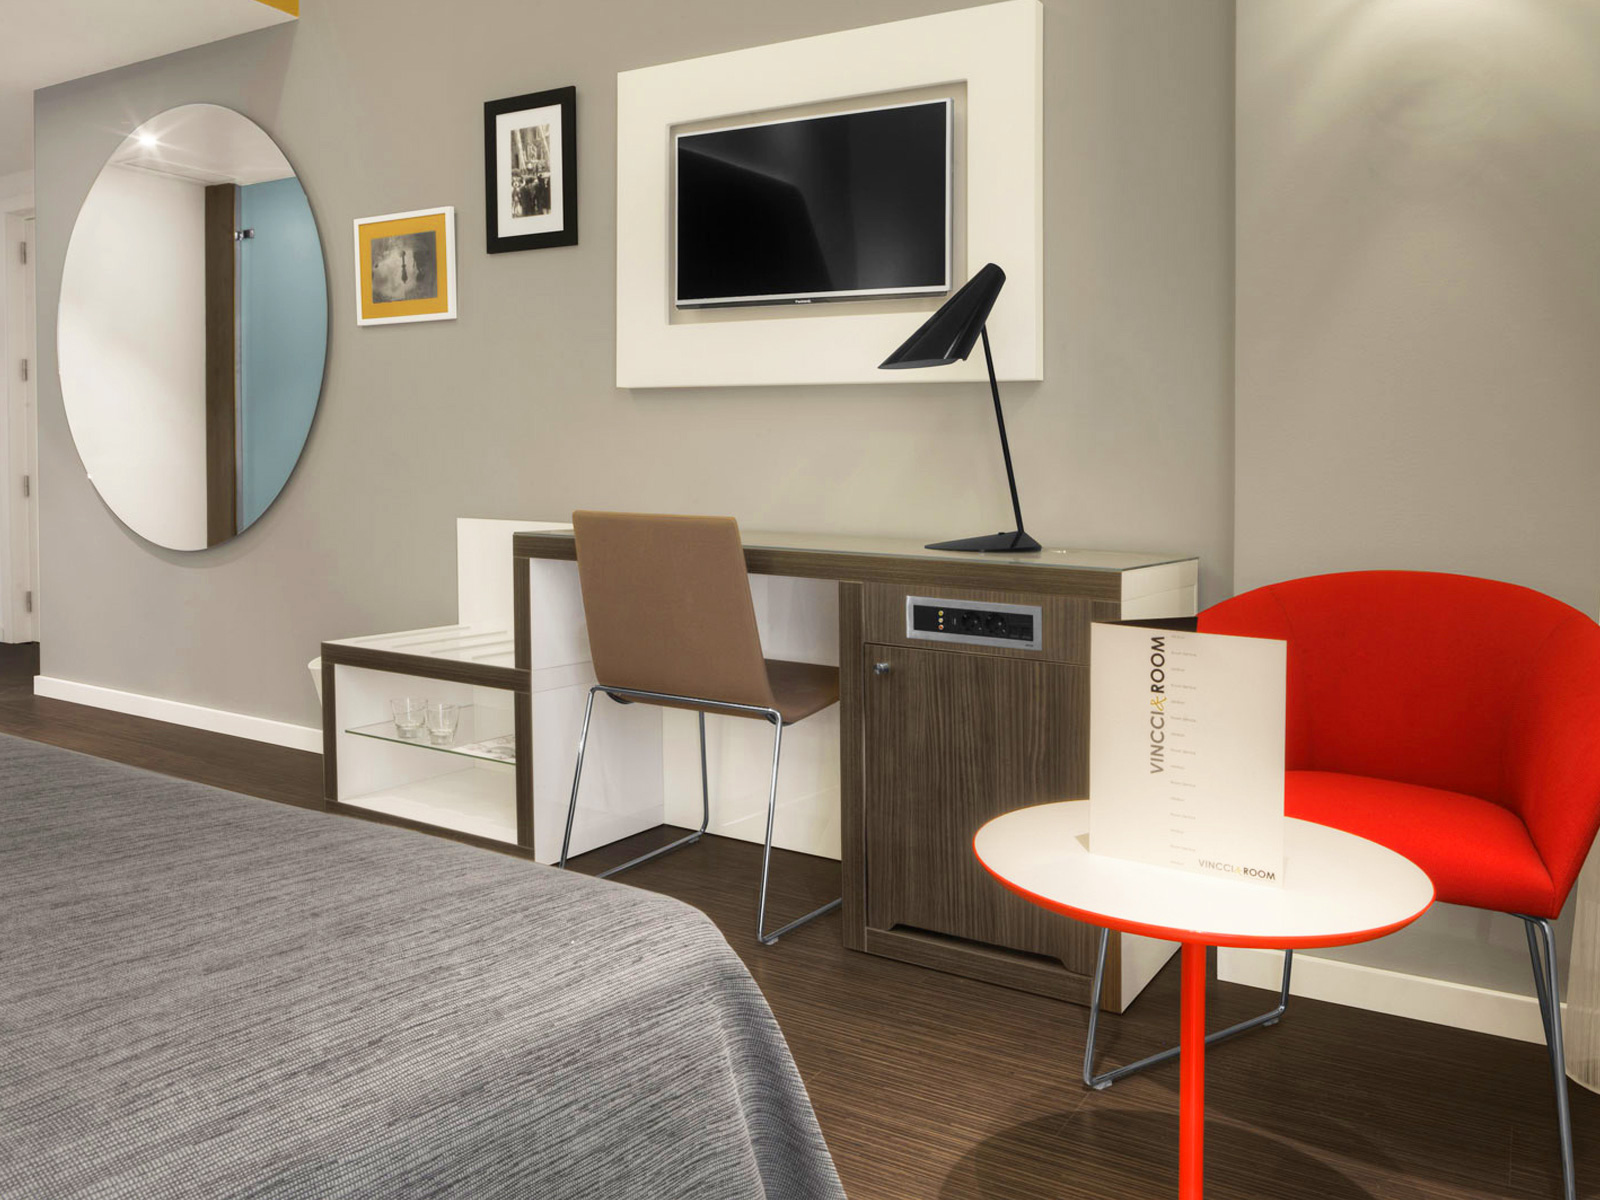 Rooms in the centre of Madrid | Espahotel, Official Website